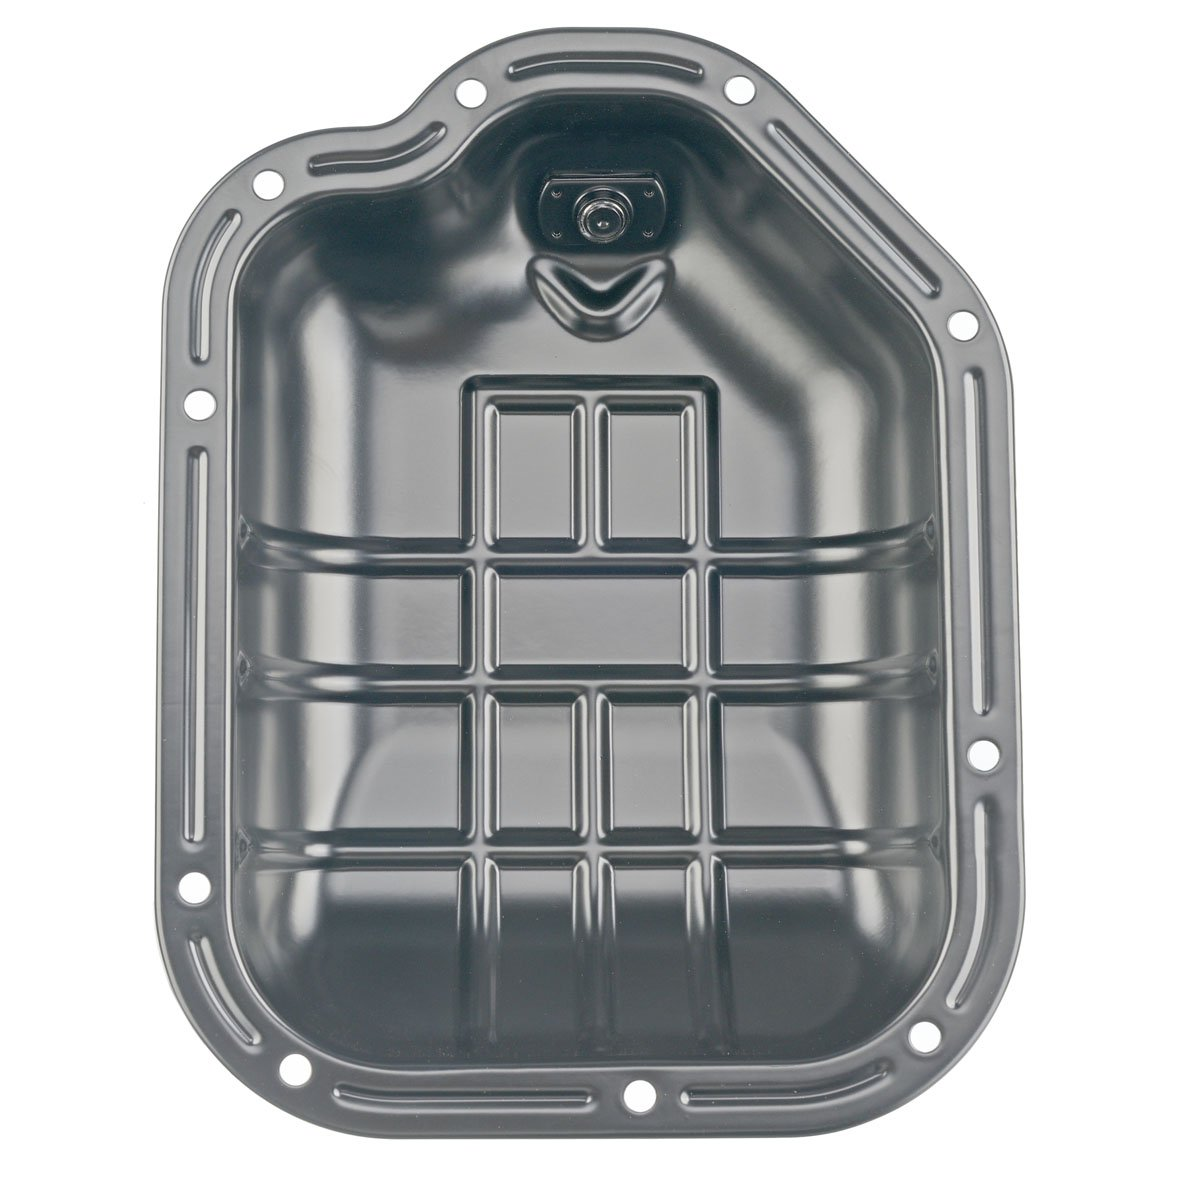 A-Premium Engine Oil Pan for Nissan Altima 2007-2016 Murano 2009-2016 Quest 2011-2014 Pathfinder Infiniti JX35 QX60 3.5L